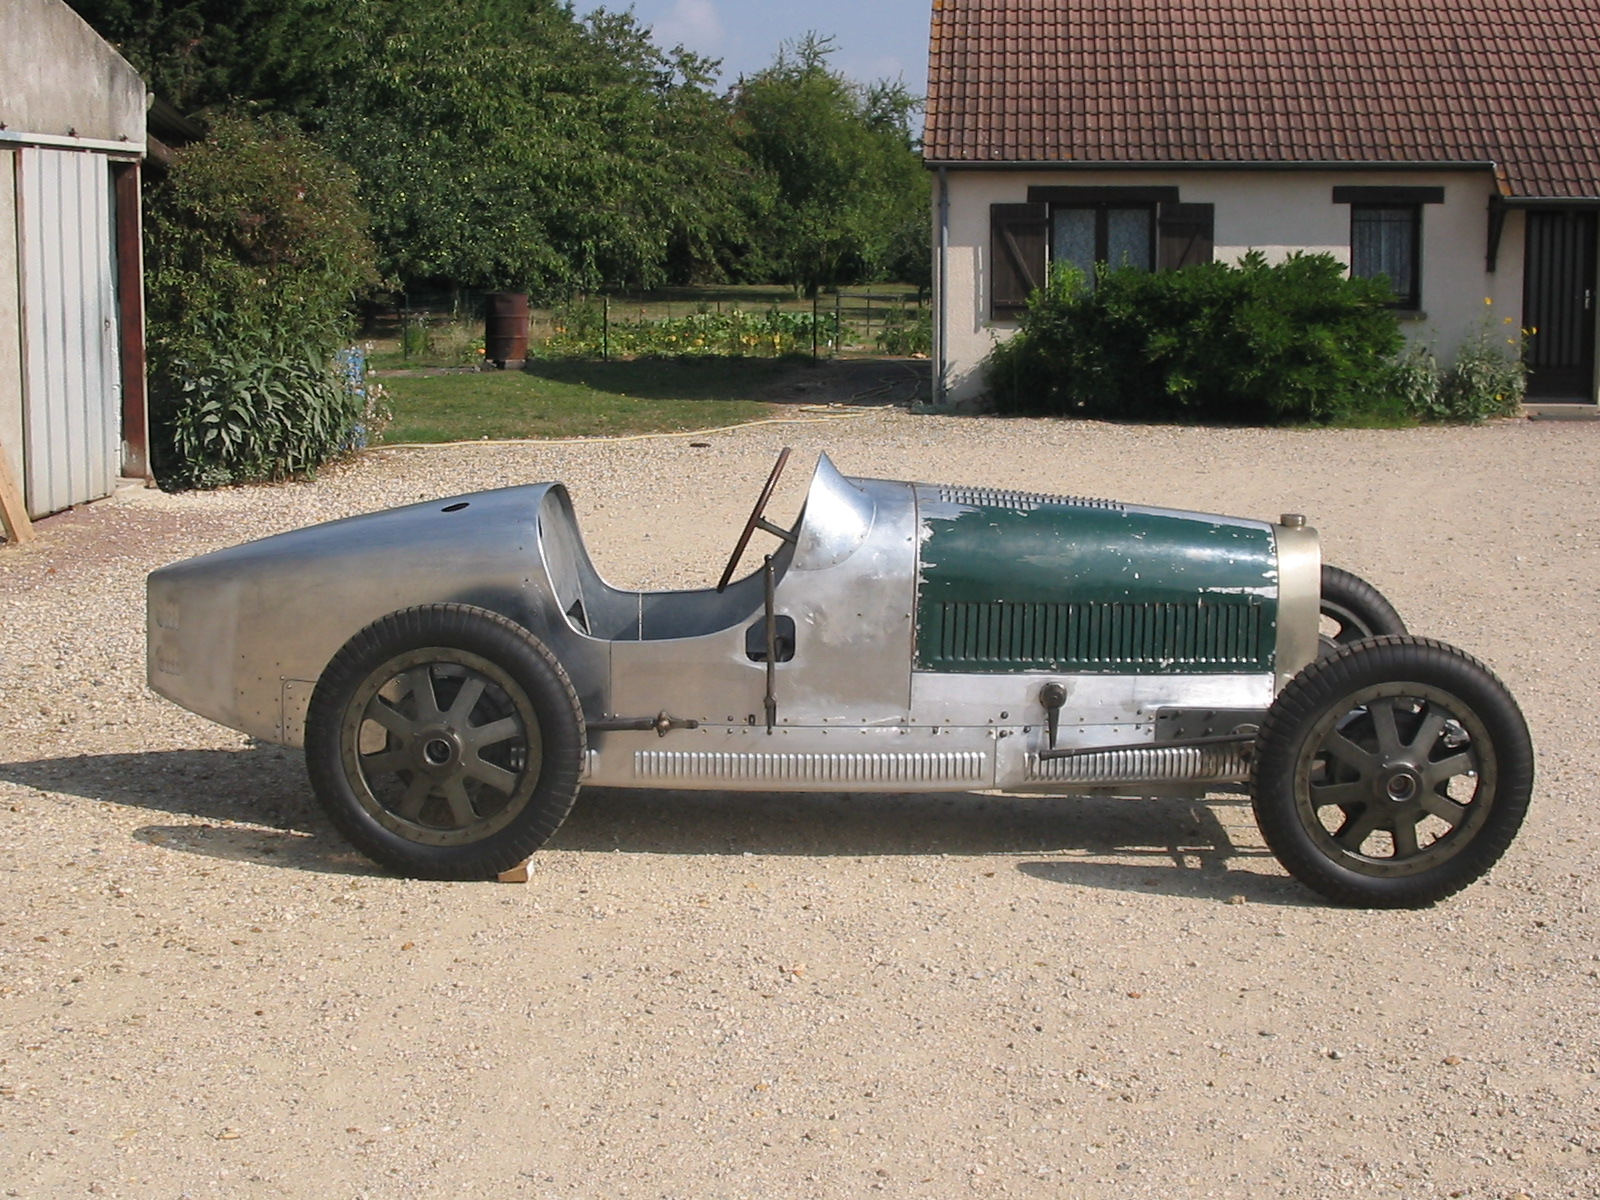 restauration d u0026 39 une bugatti caisse aluminium par as carrosserie